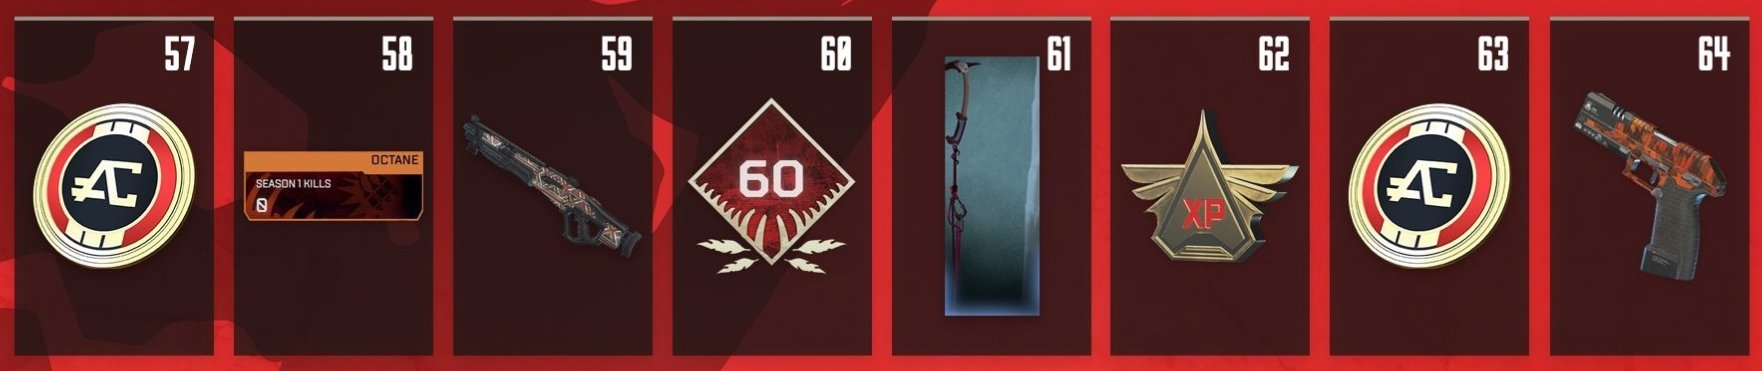 Apex Legends Battle Pass Rewards Levels 57-64